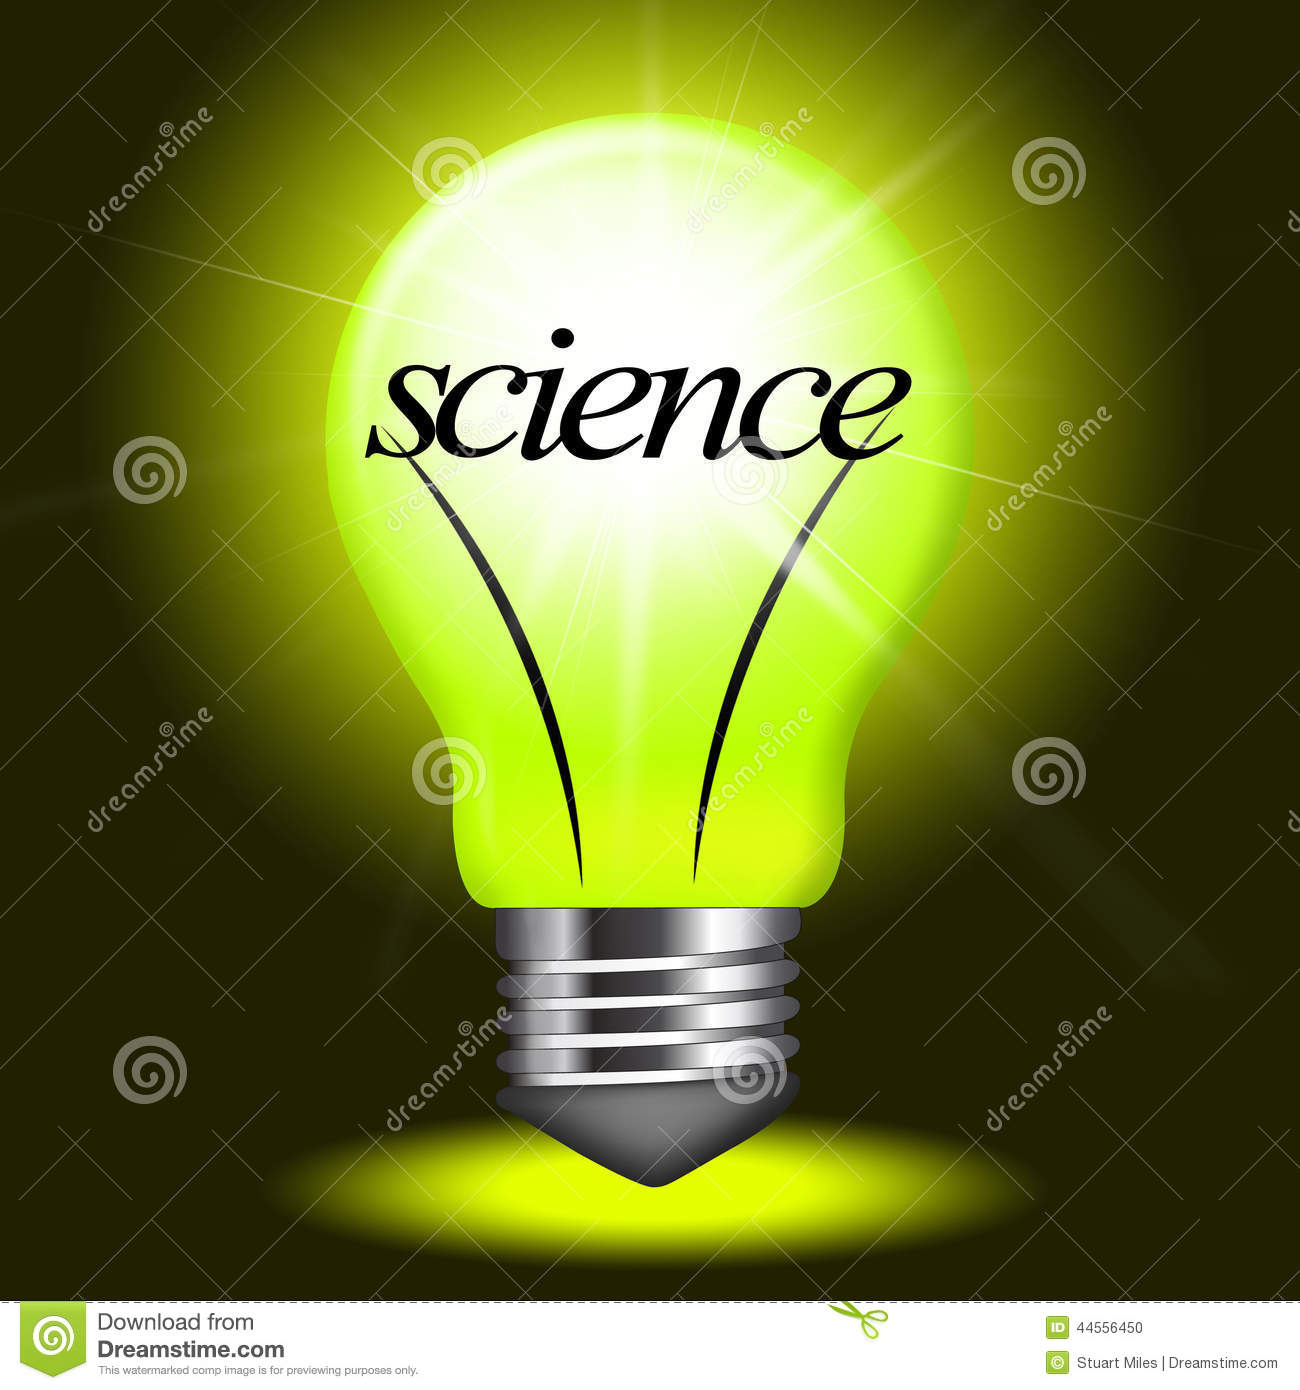 science lightbulb shows chemistry physics and formulas physics clipart head physics clipart images